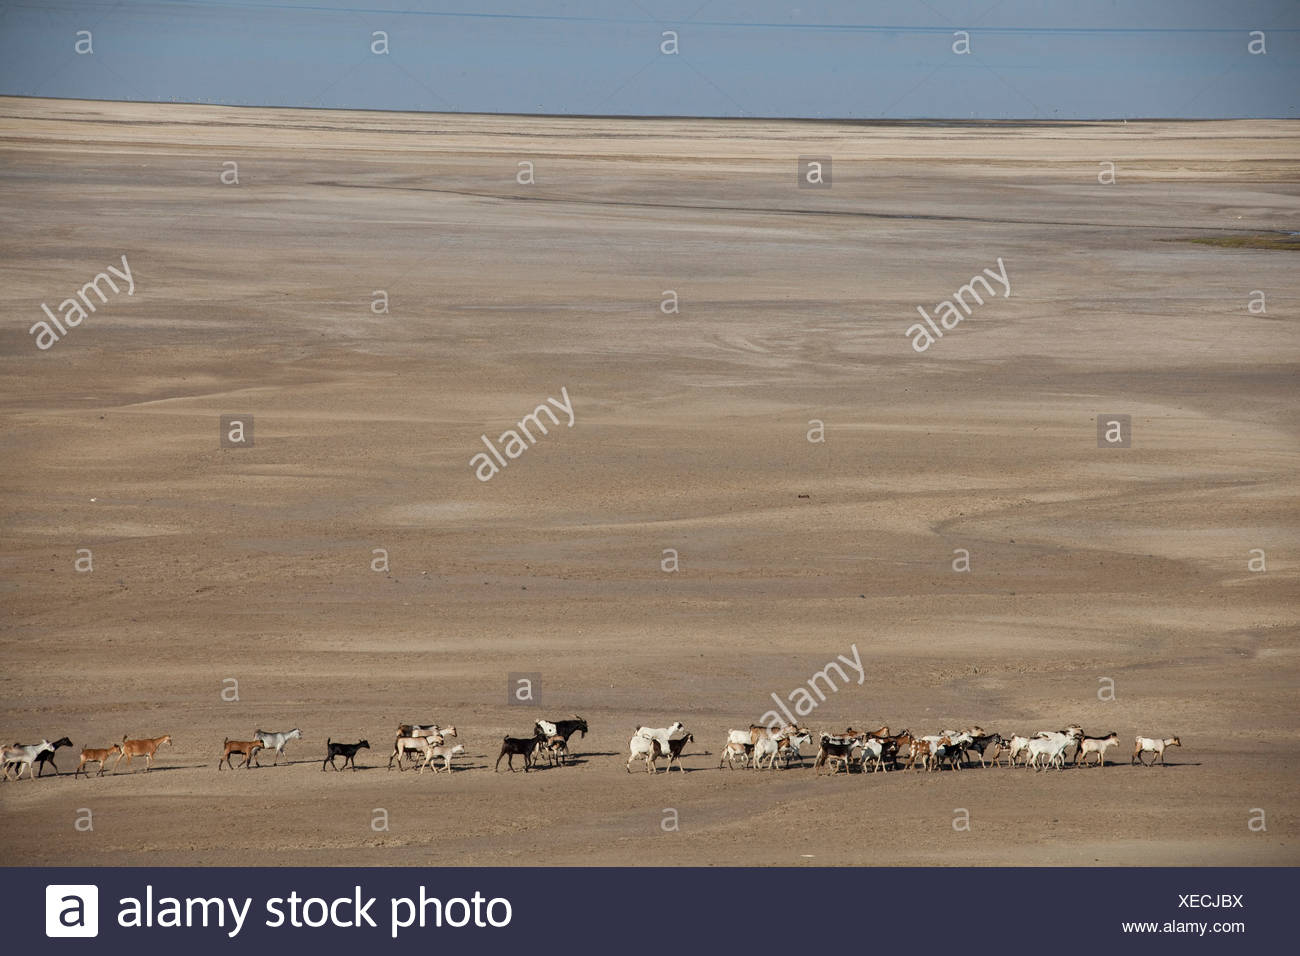 herd of goats, goats, nanny goats, Abbesee, Djibouti, Africa, scenery, landscape, nature, lake, lakes, agriculture, desert - Stock Image